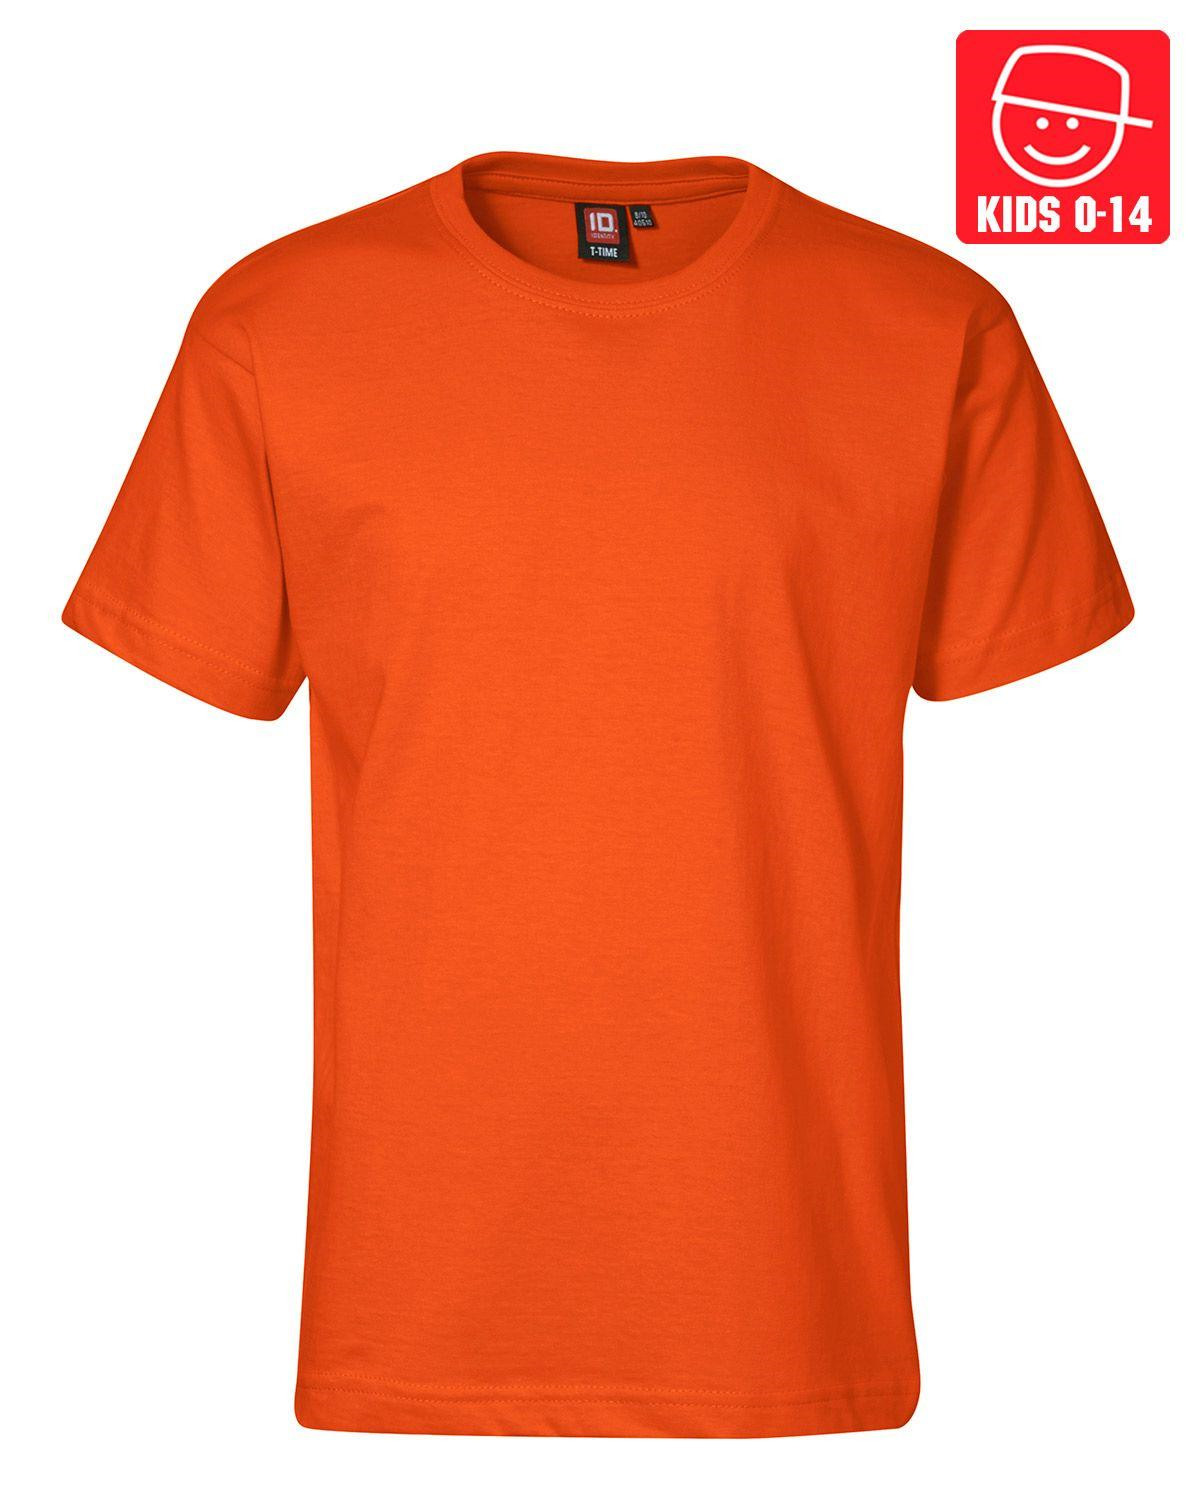 Image of   ID T-TIME T-shirt (Orange, 122)